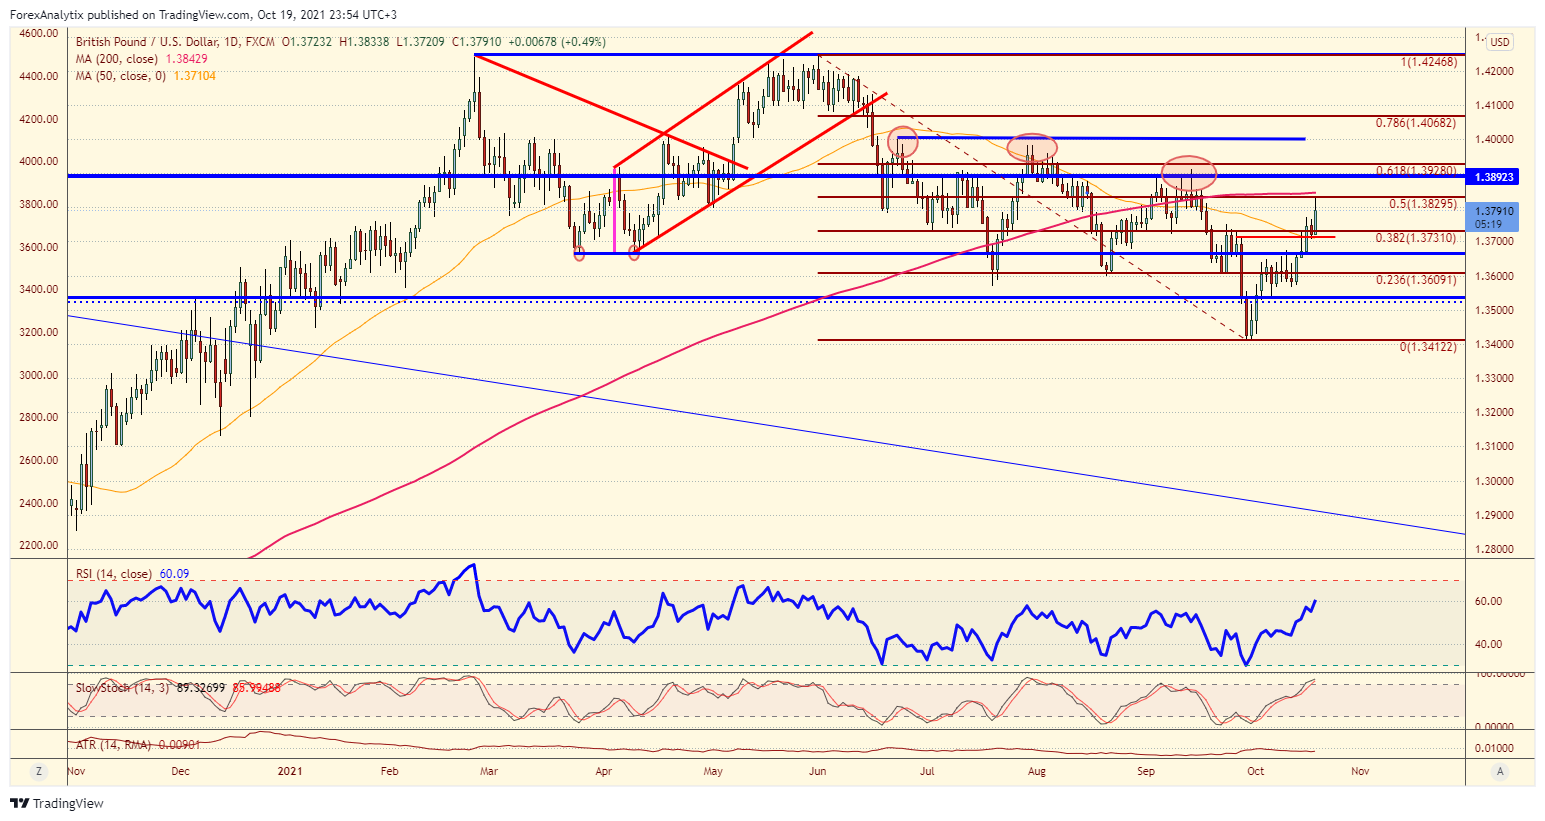 Chart Of The Day: GBP/USD